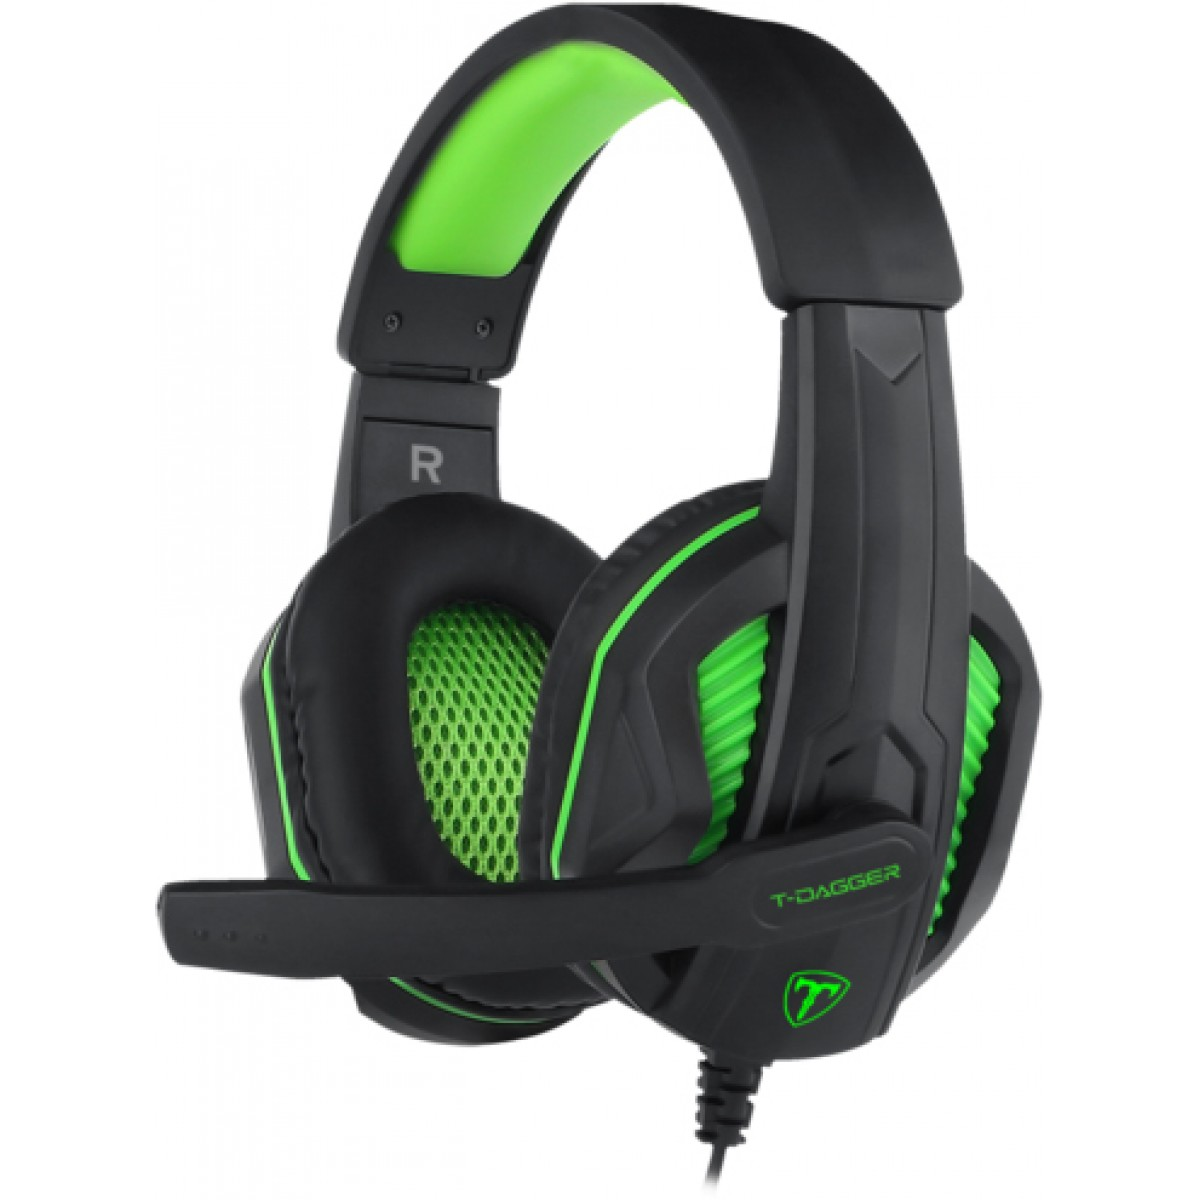 Headset Gamer T-Dagger Cook, Black e Green, T-RGH100